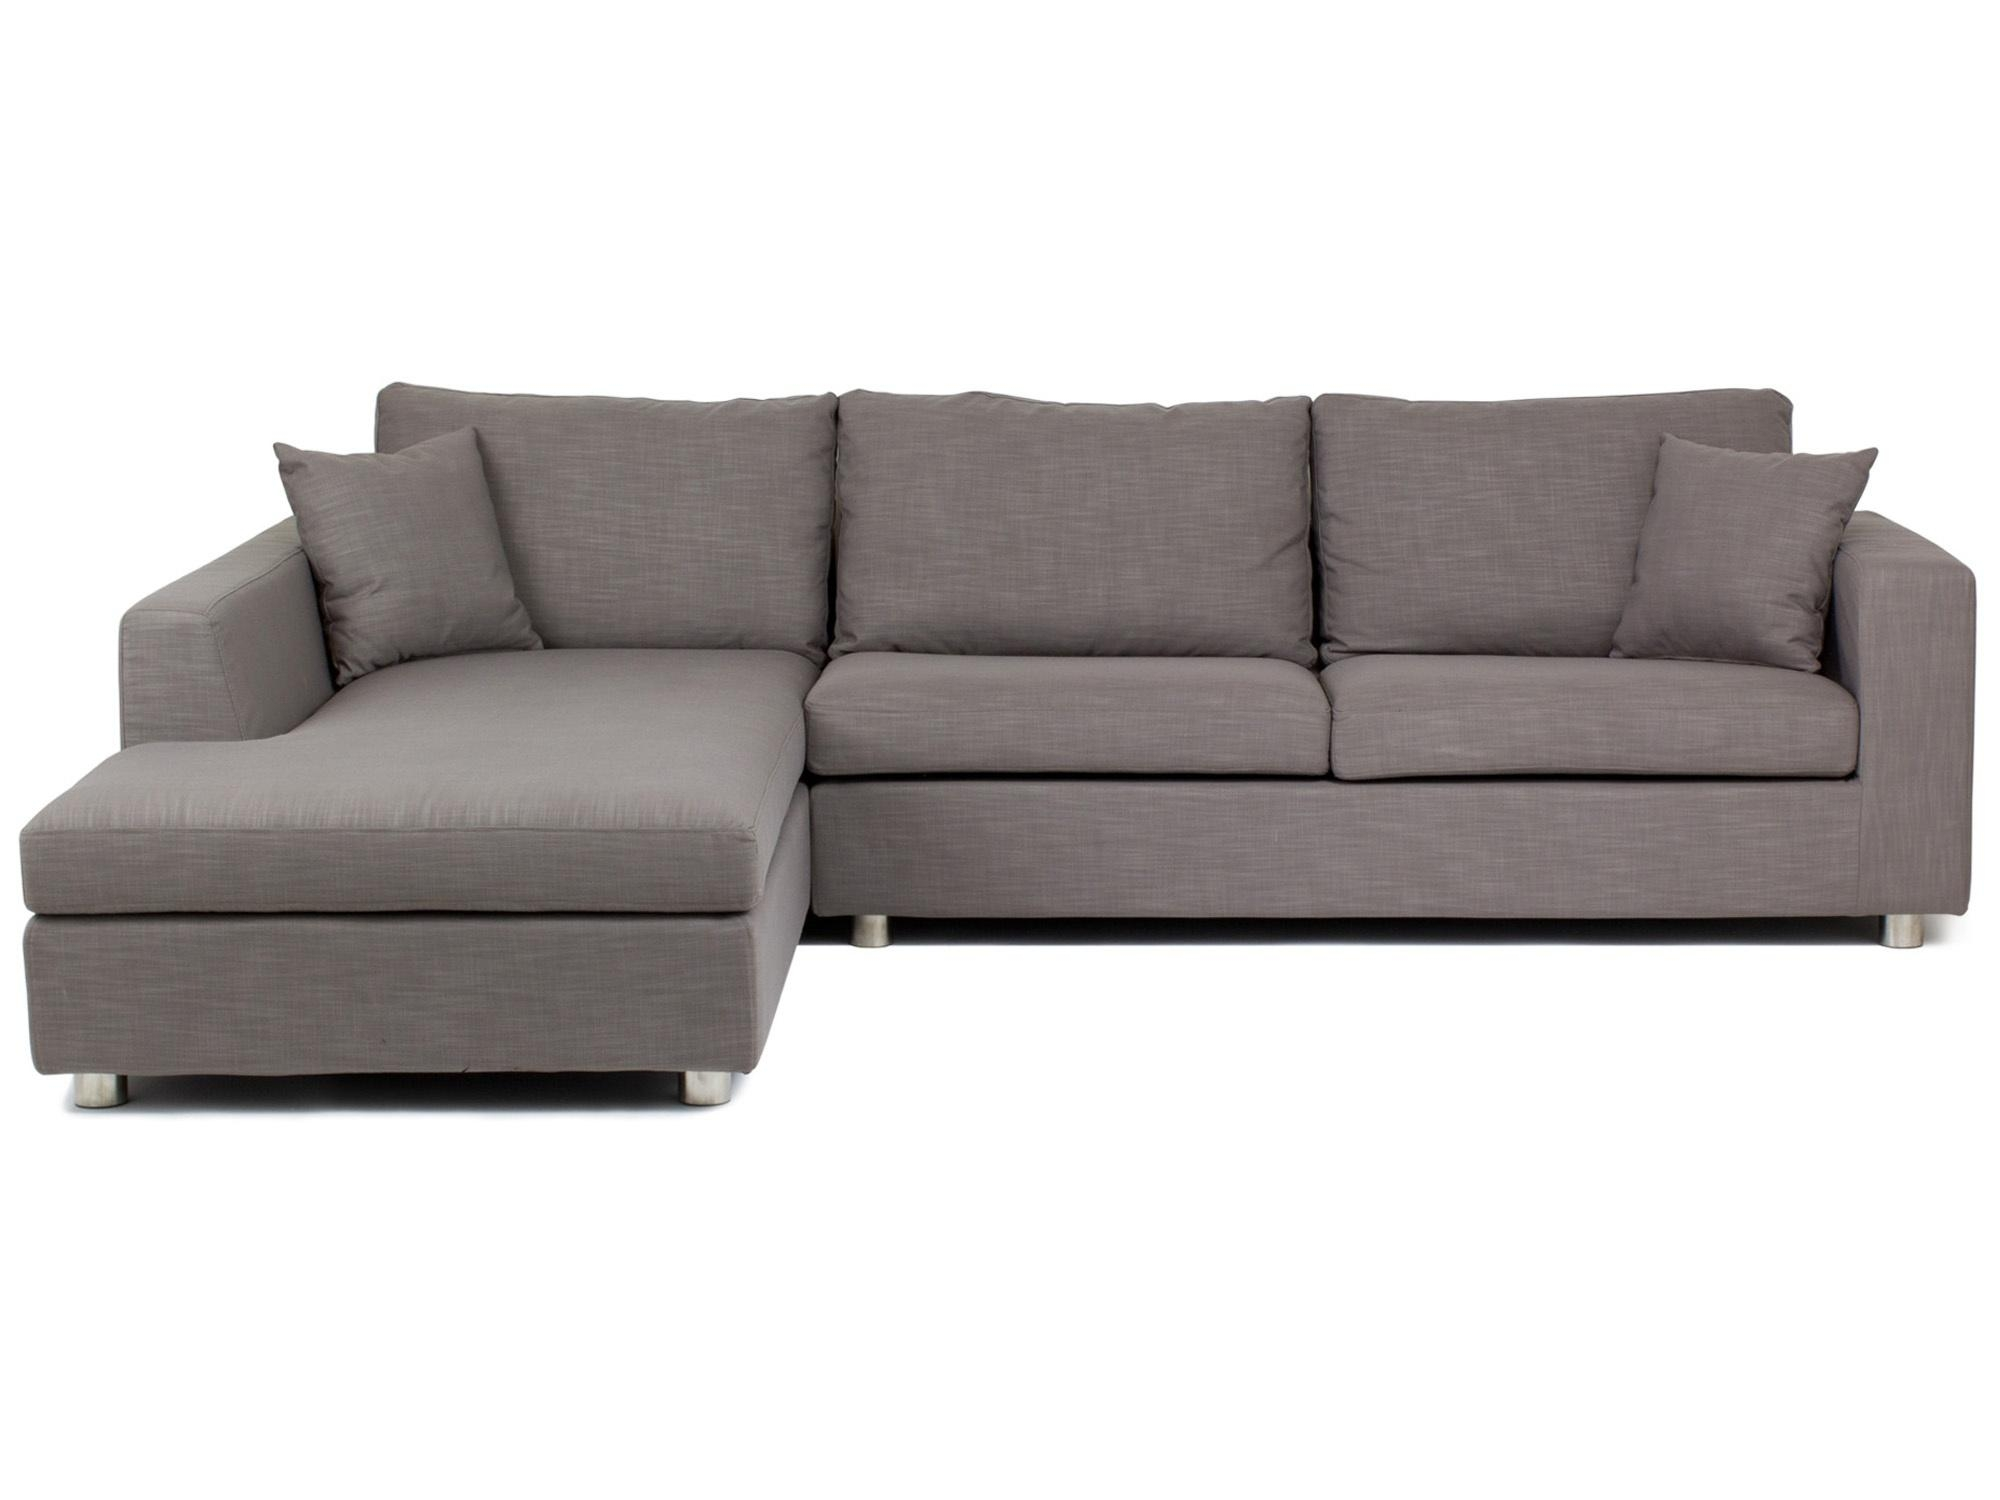 Sofas: Classic Meets Contemporary Chaise Sofa Bed For Ideal Living Regarding Sofa Beds With Storage Chaise (Image 20 of 20)